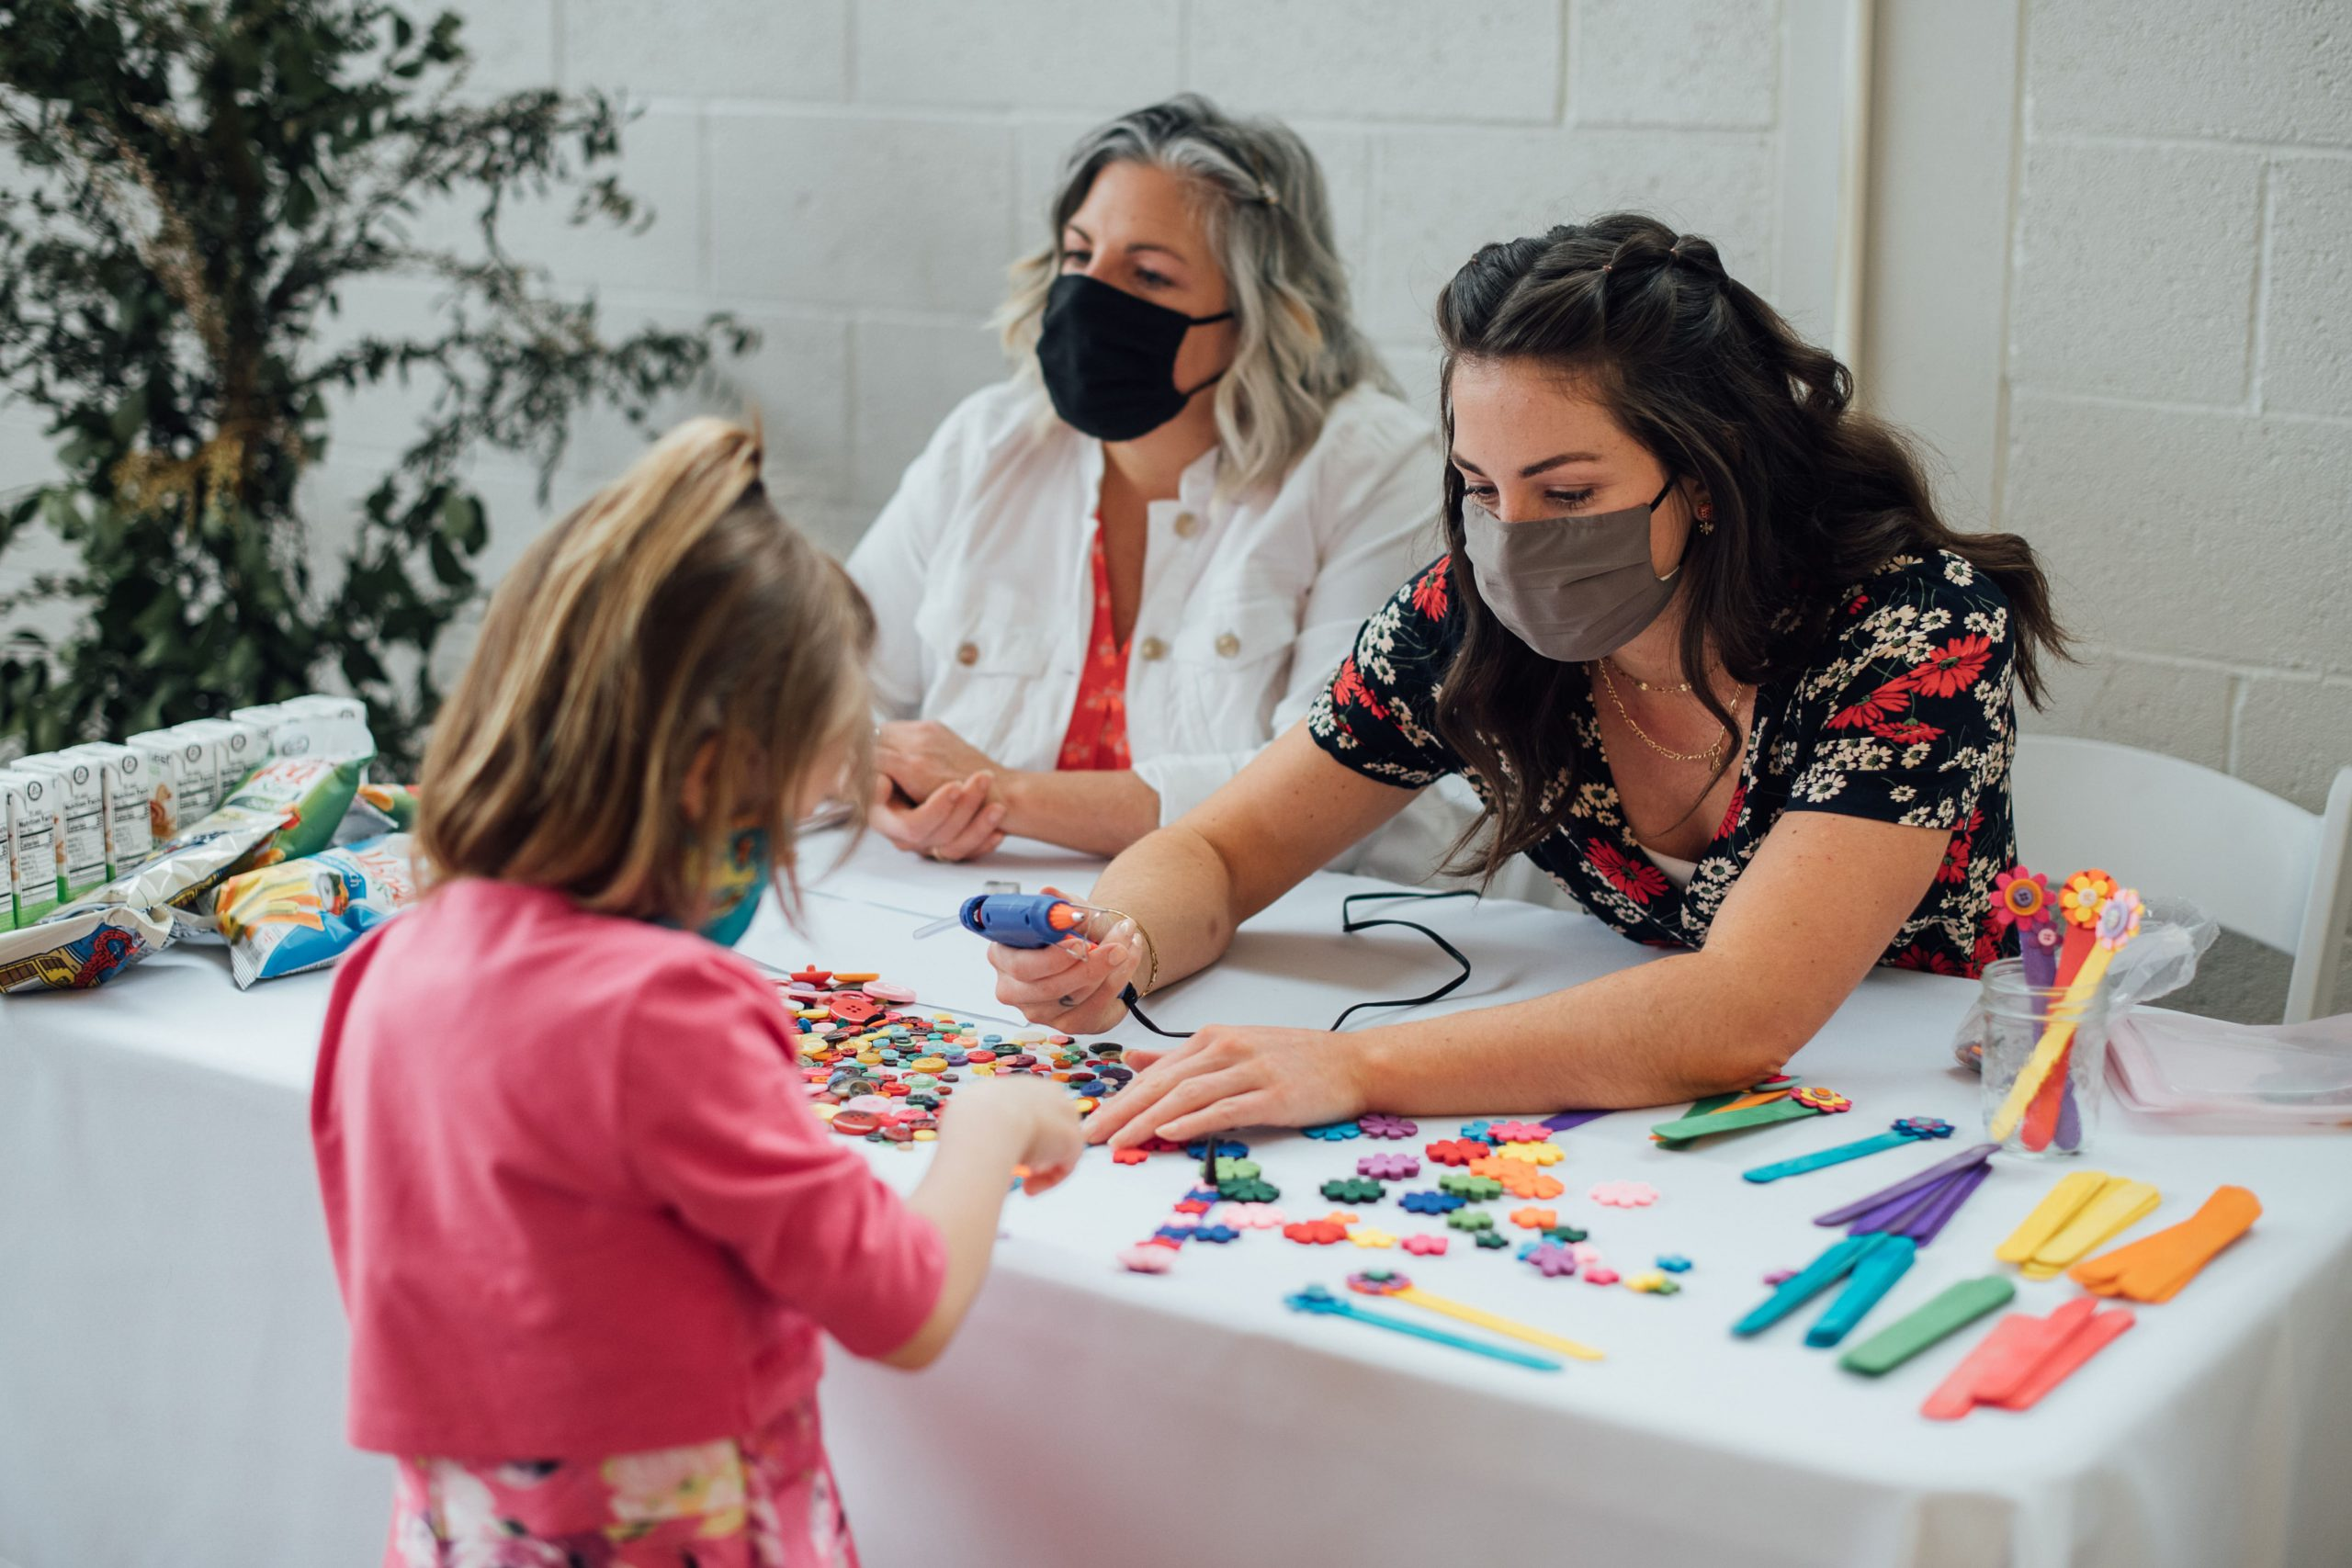 Volunteers doing crafts with child